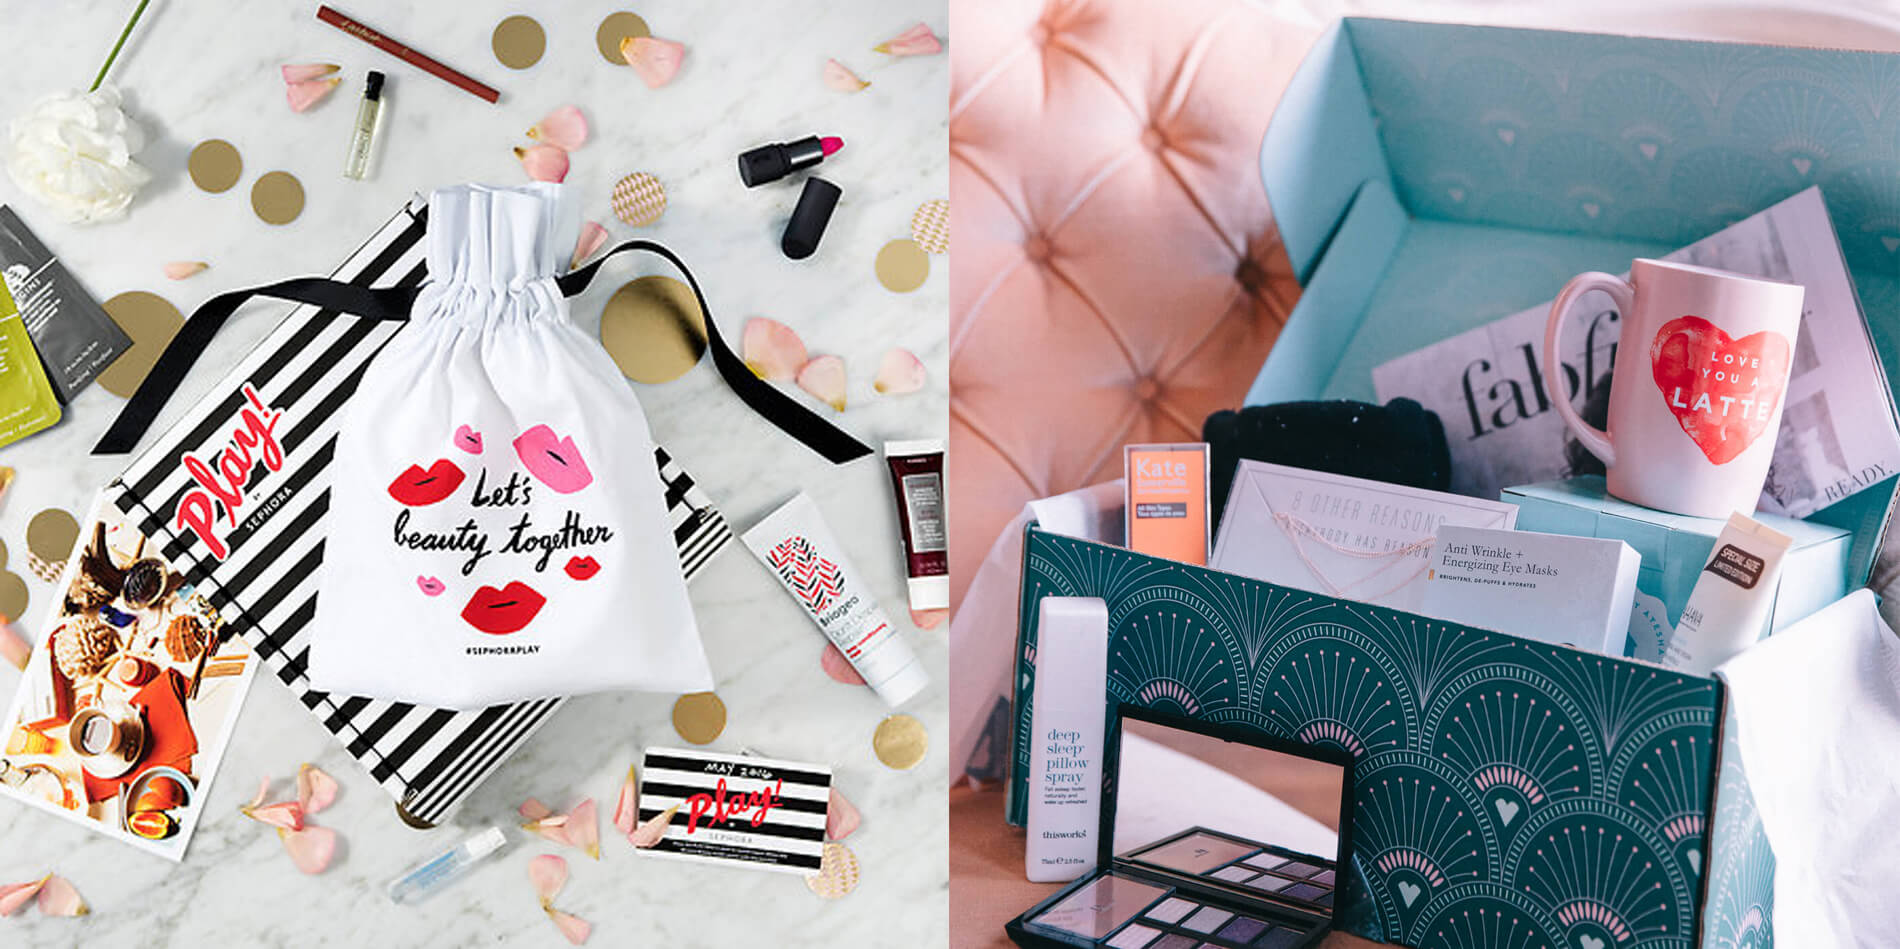 Birthday Gifts For Best Friend Pics Last Minute Gift Ideas You Should Consider A Subscription Box There Are So Many Options These